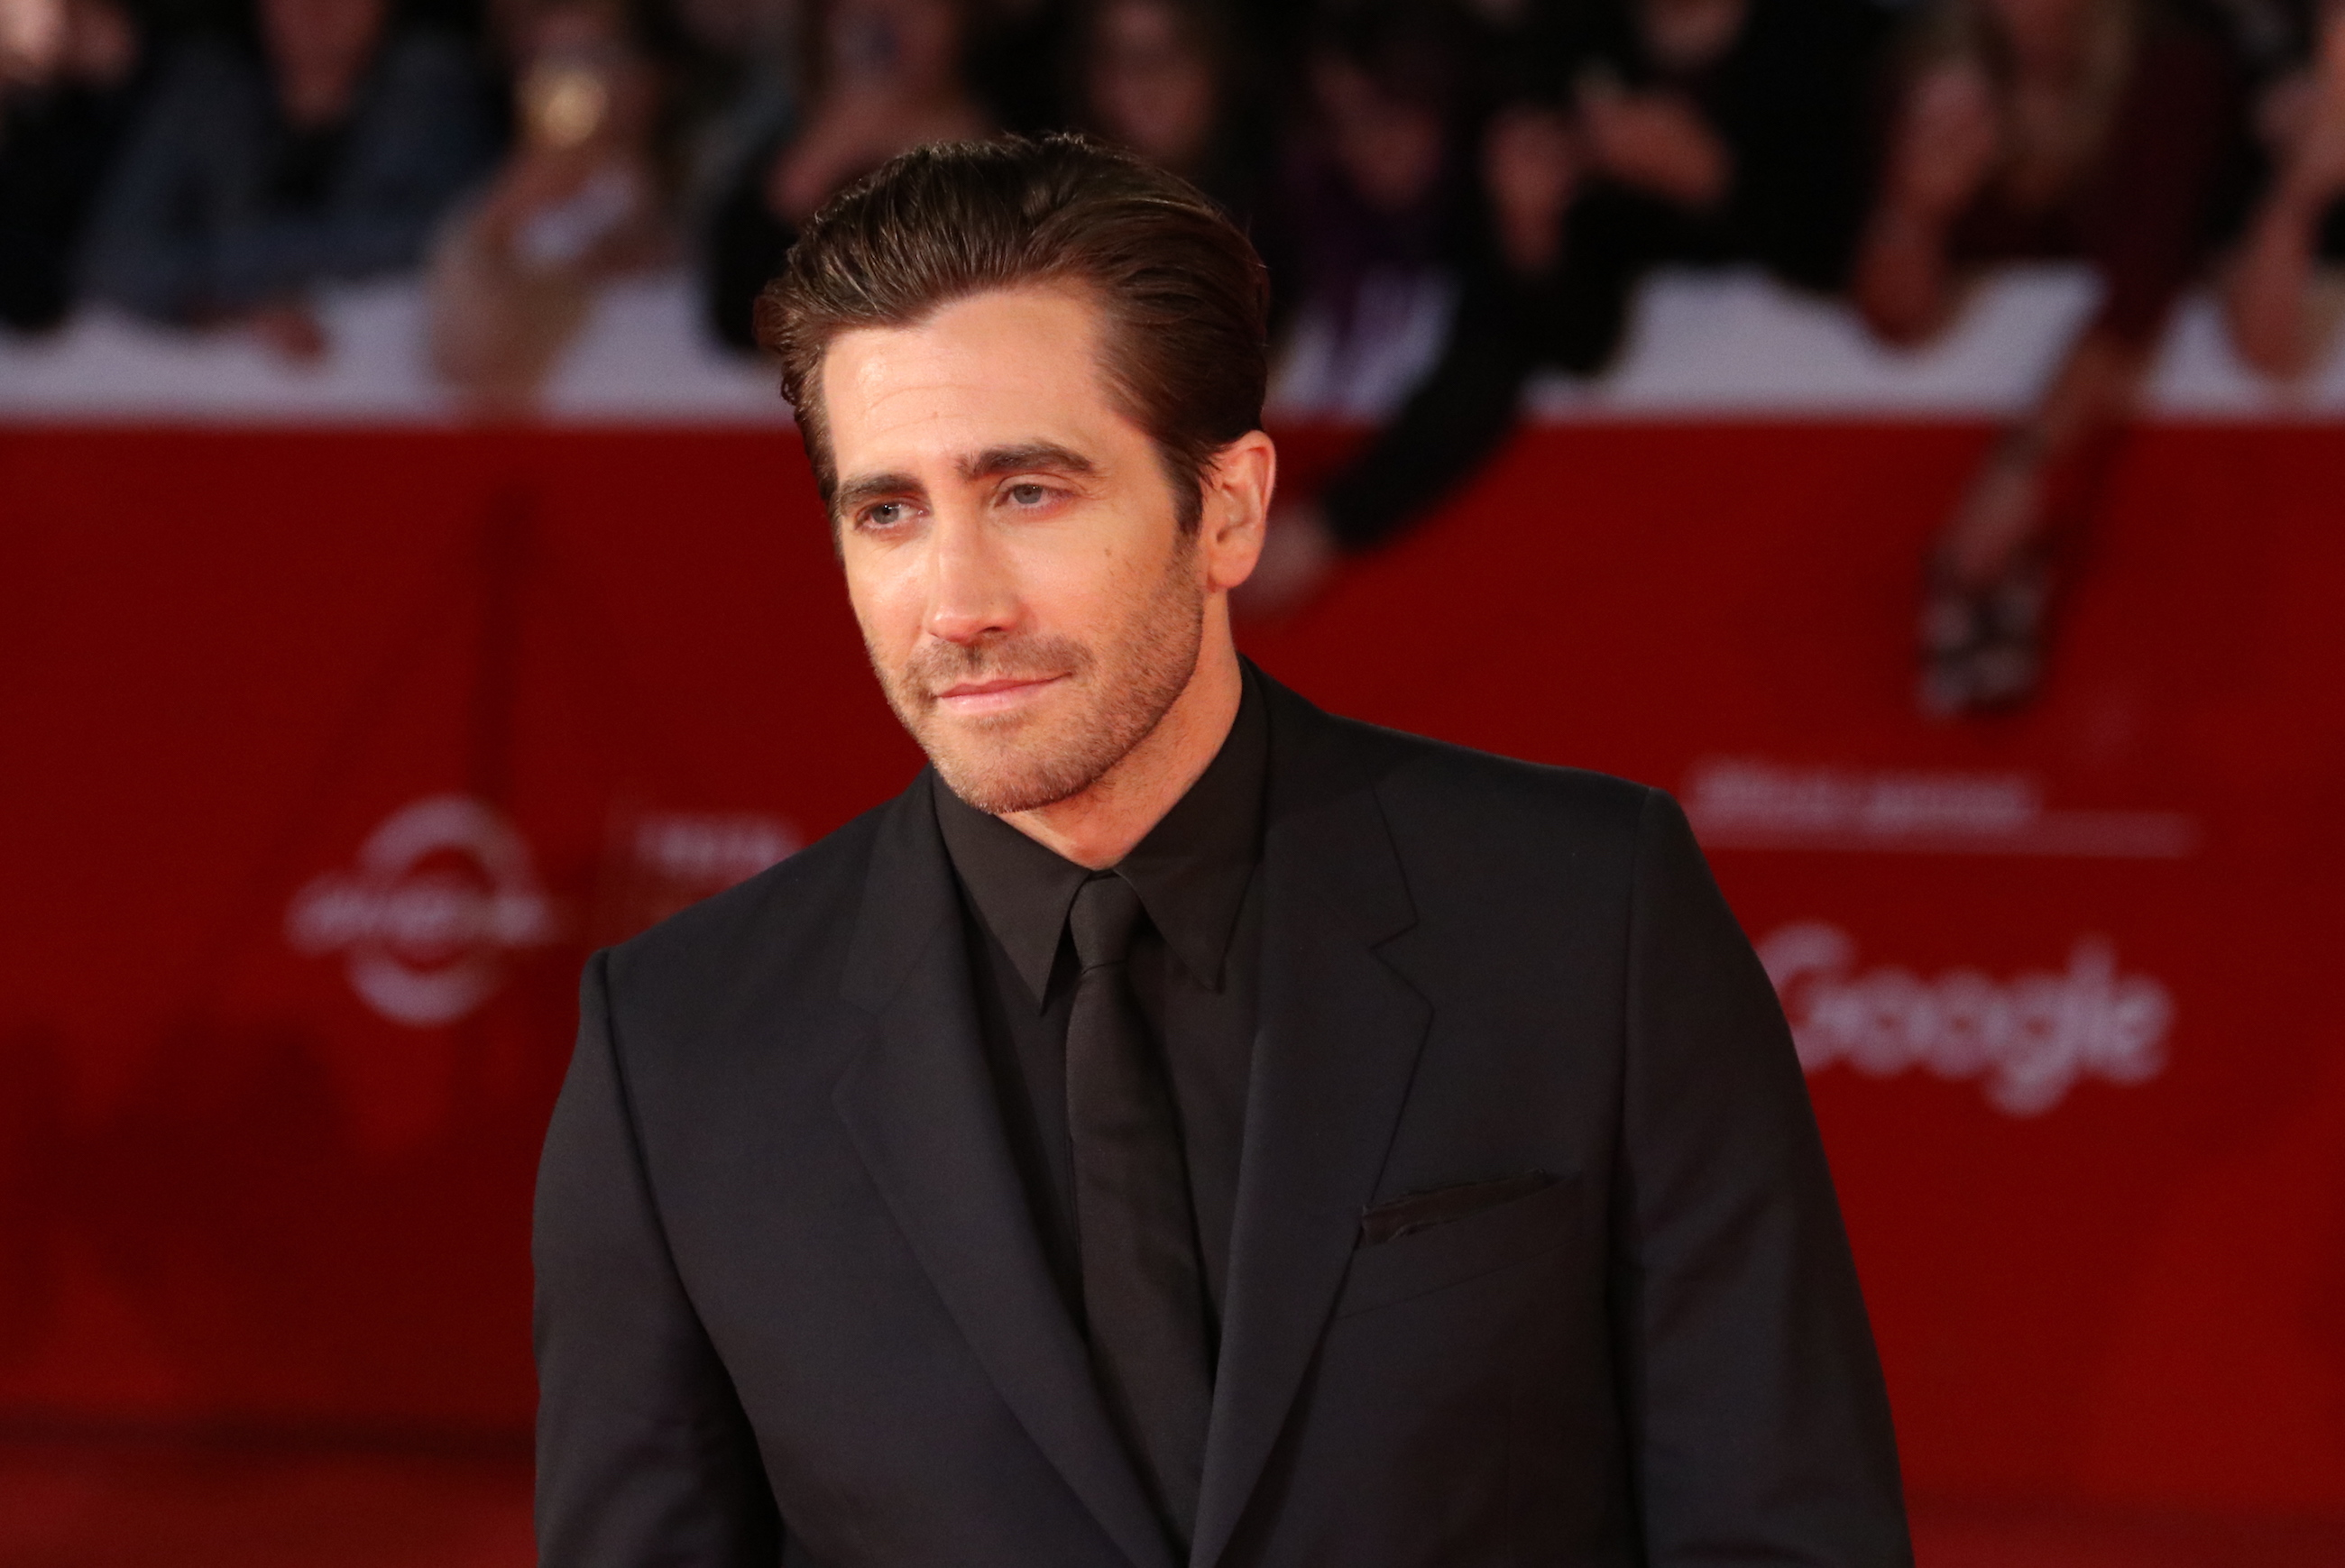 Roma 2017: Jake Gyllenhaal sul red carpet di Stronger